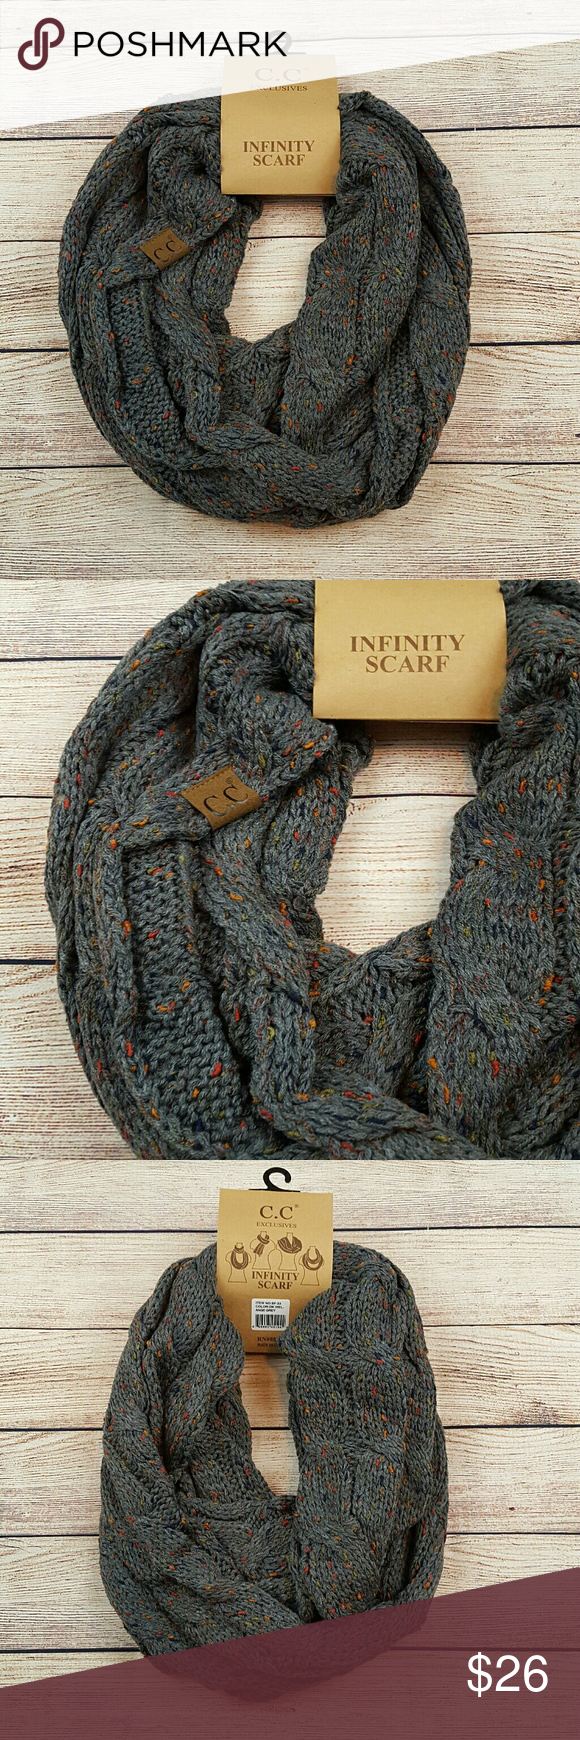 87dd65bf6 C.C flecked infinity scarf C.C brand flecked infinity scarf in a melange  grey color. 100% acrylic. Bundle to save more. Please feel free to ask  questions.